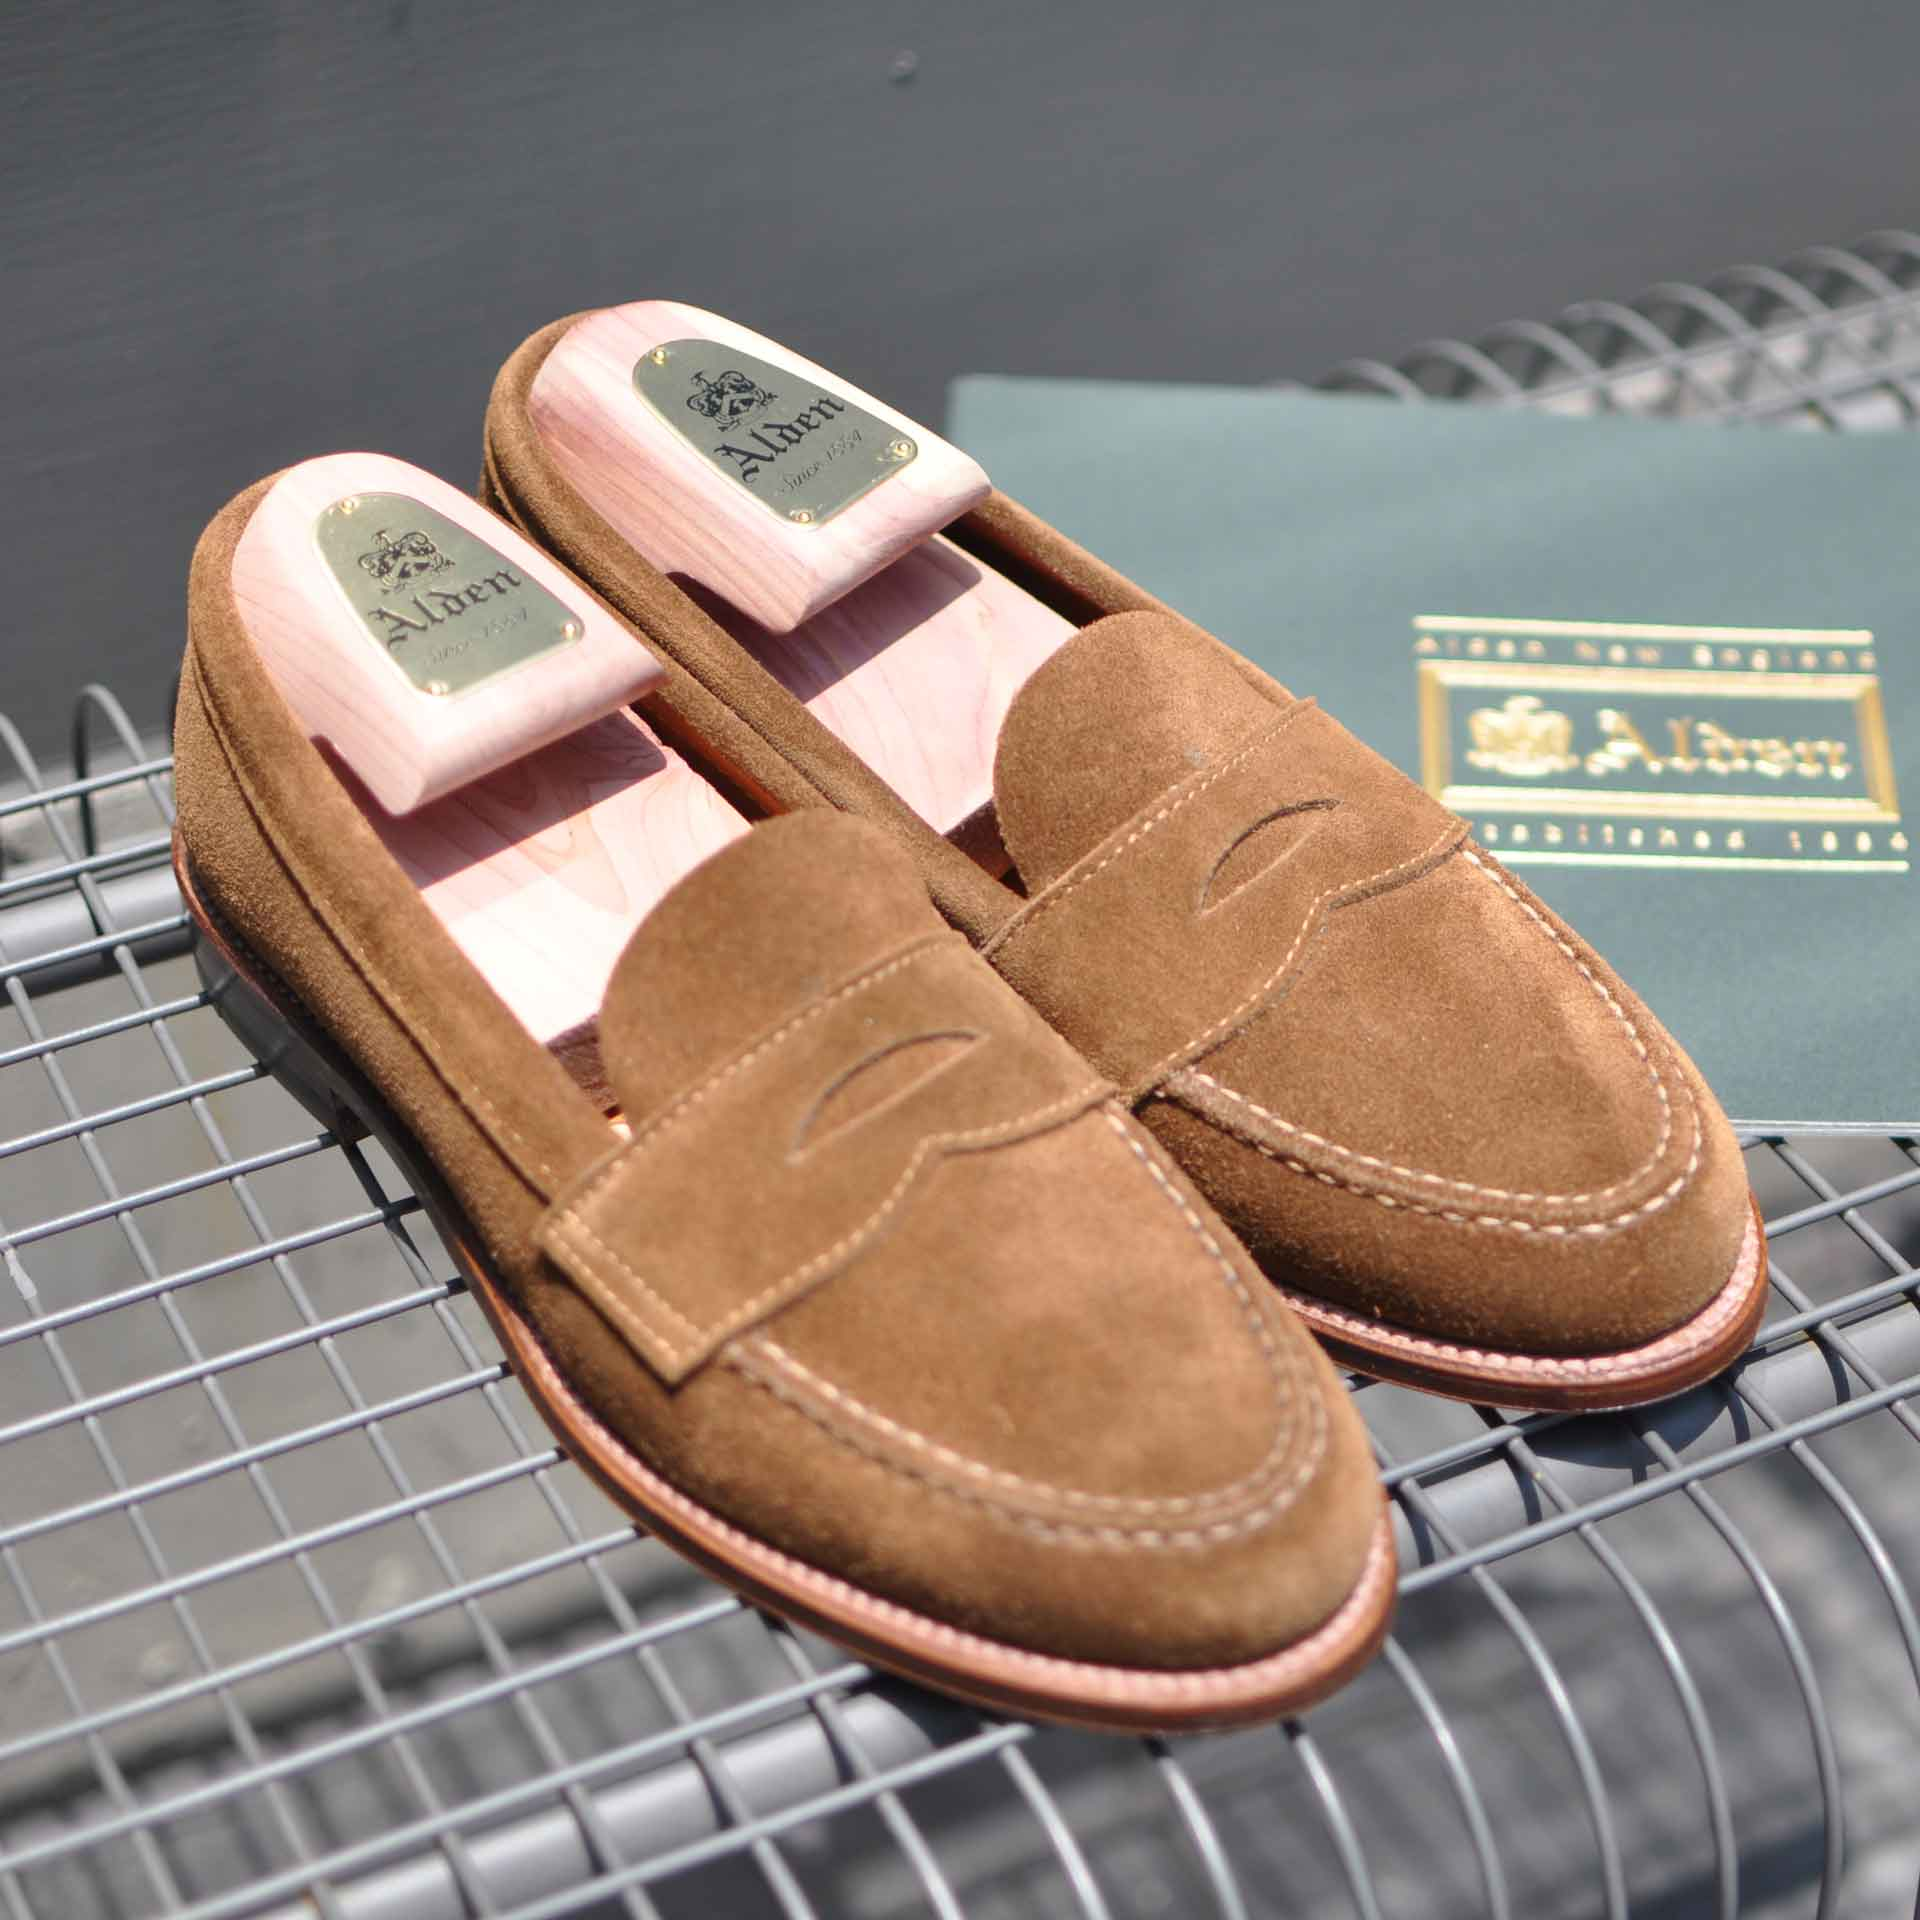 Alden LHS Suede Penny Loafers